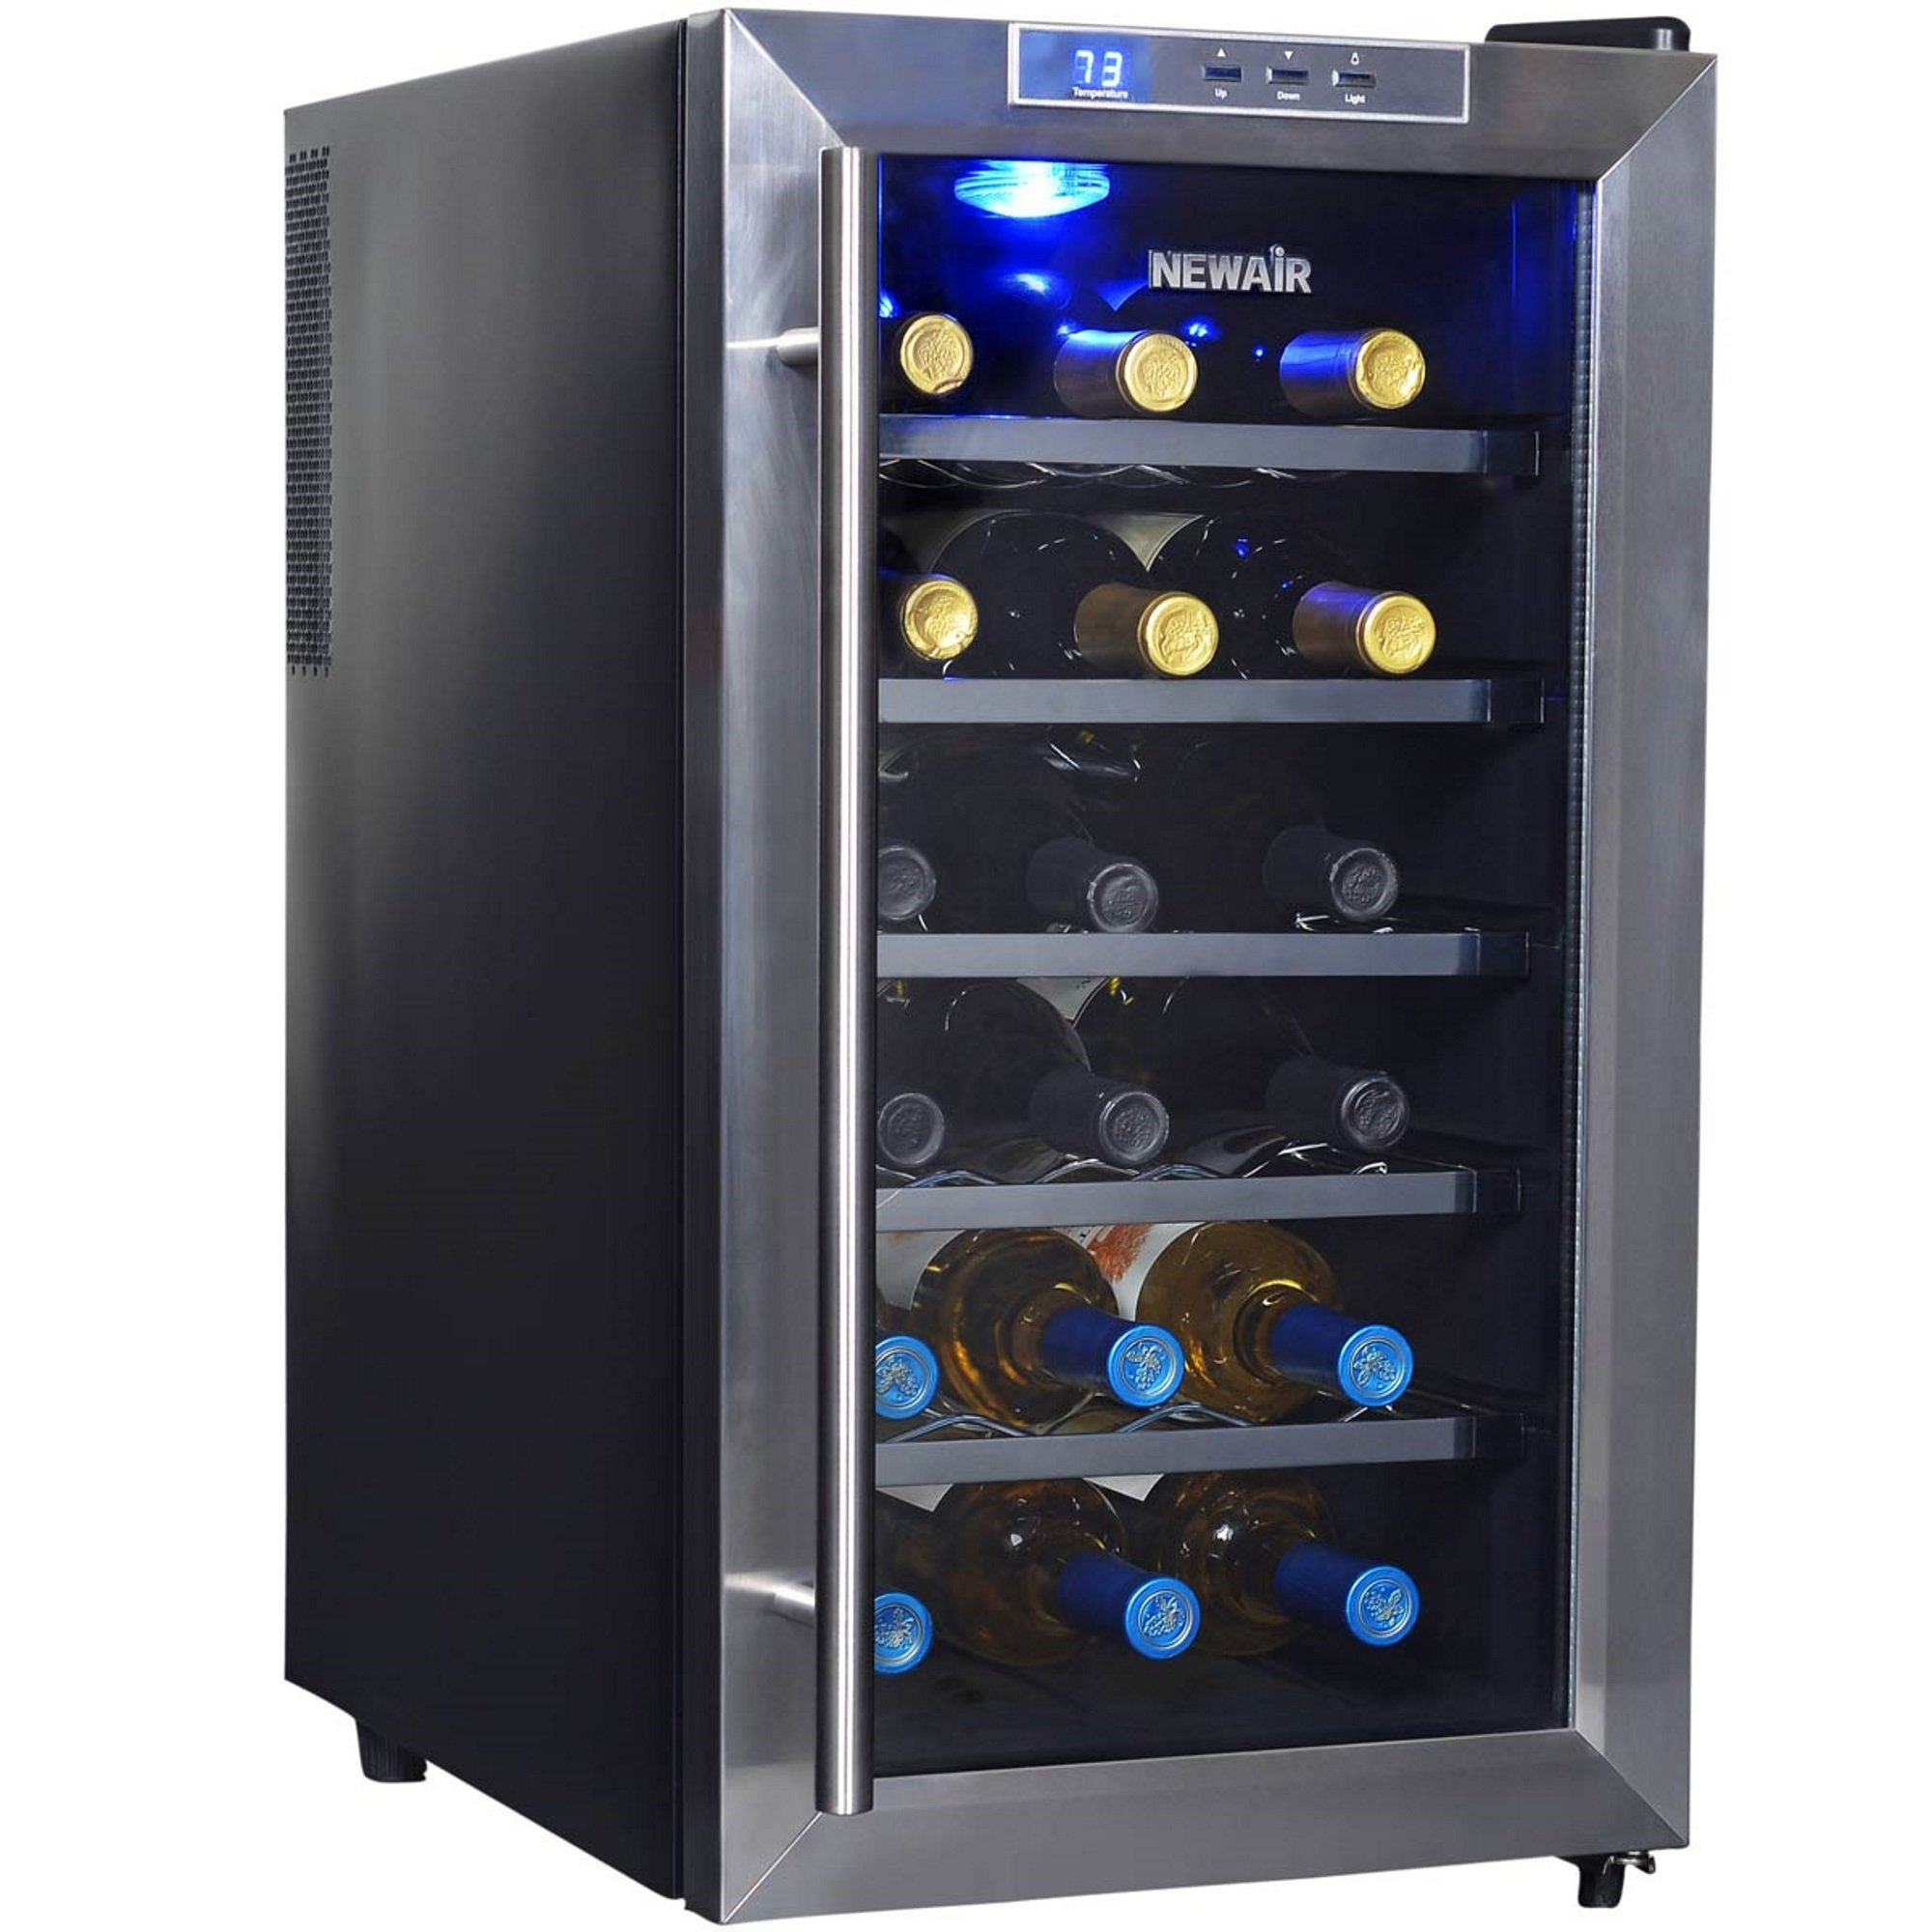 NewAir AW-181E 18 Bottle Thermoelectric Wine Cooler, Black by NewAir (Image #7)